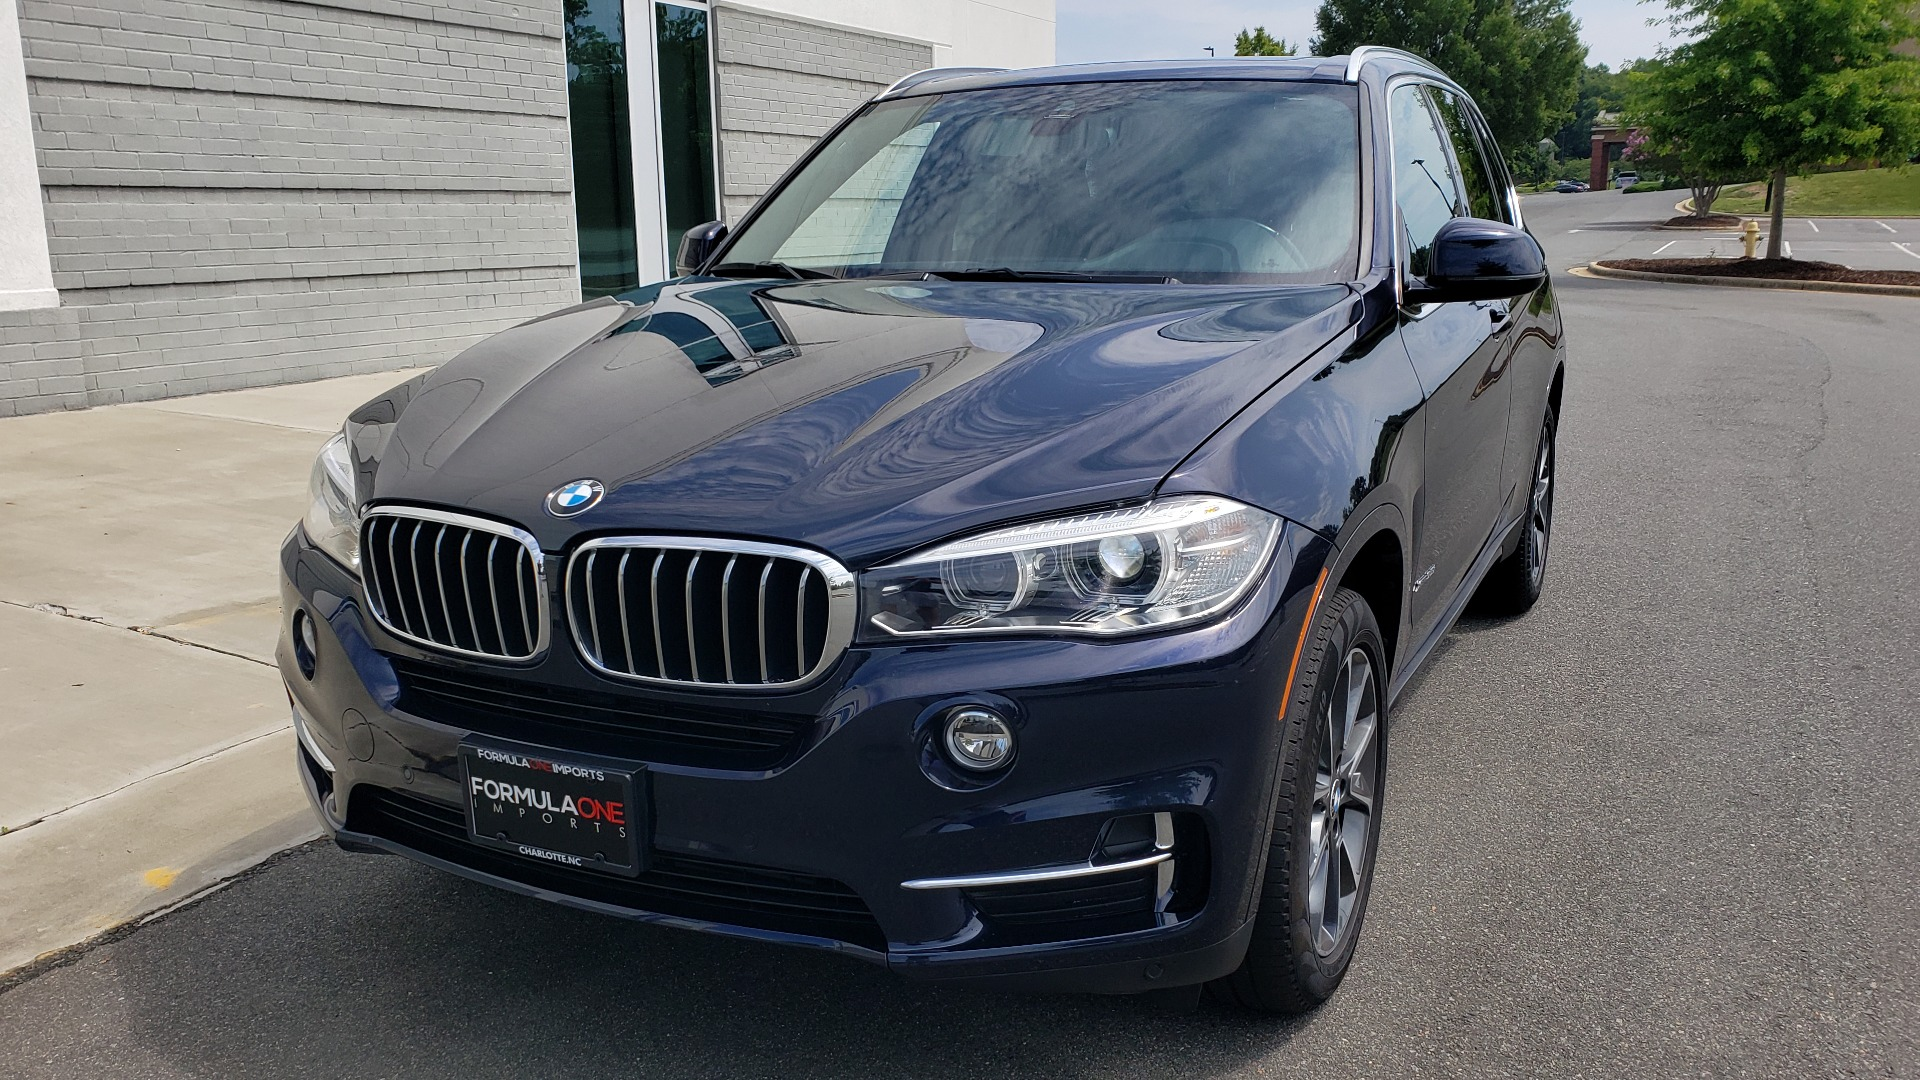 Used 2018 BMW X5 XDRIVE35I PREMIUM / LUXURY / DRVR ASST / HUD / LANE WARNING / REARVIEW for sale $43,695 at Formula Imports in Charlotte NC 28227 3